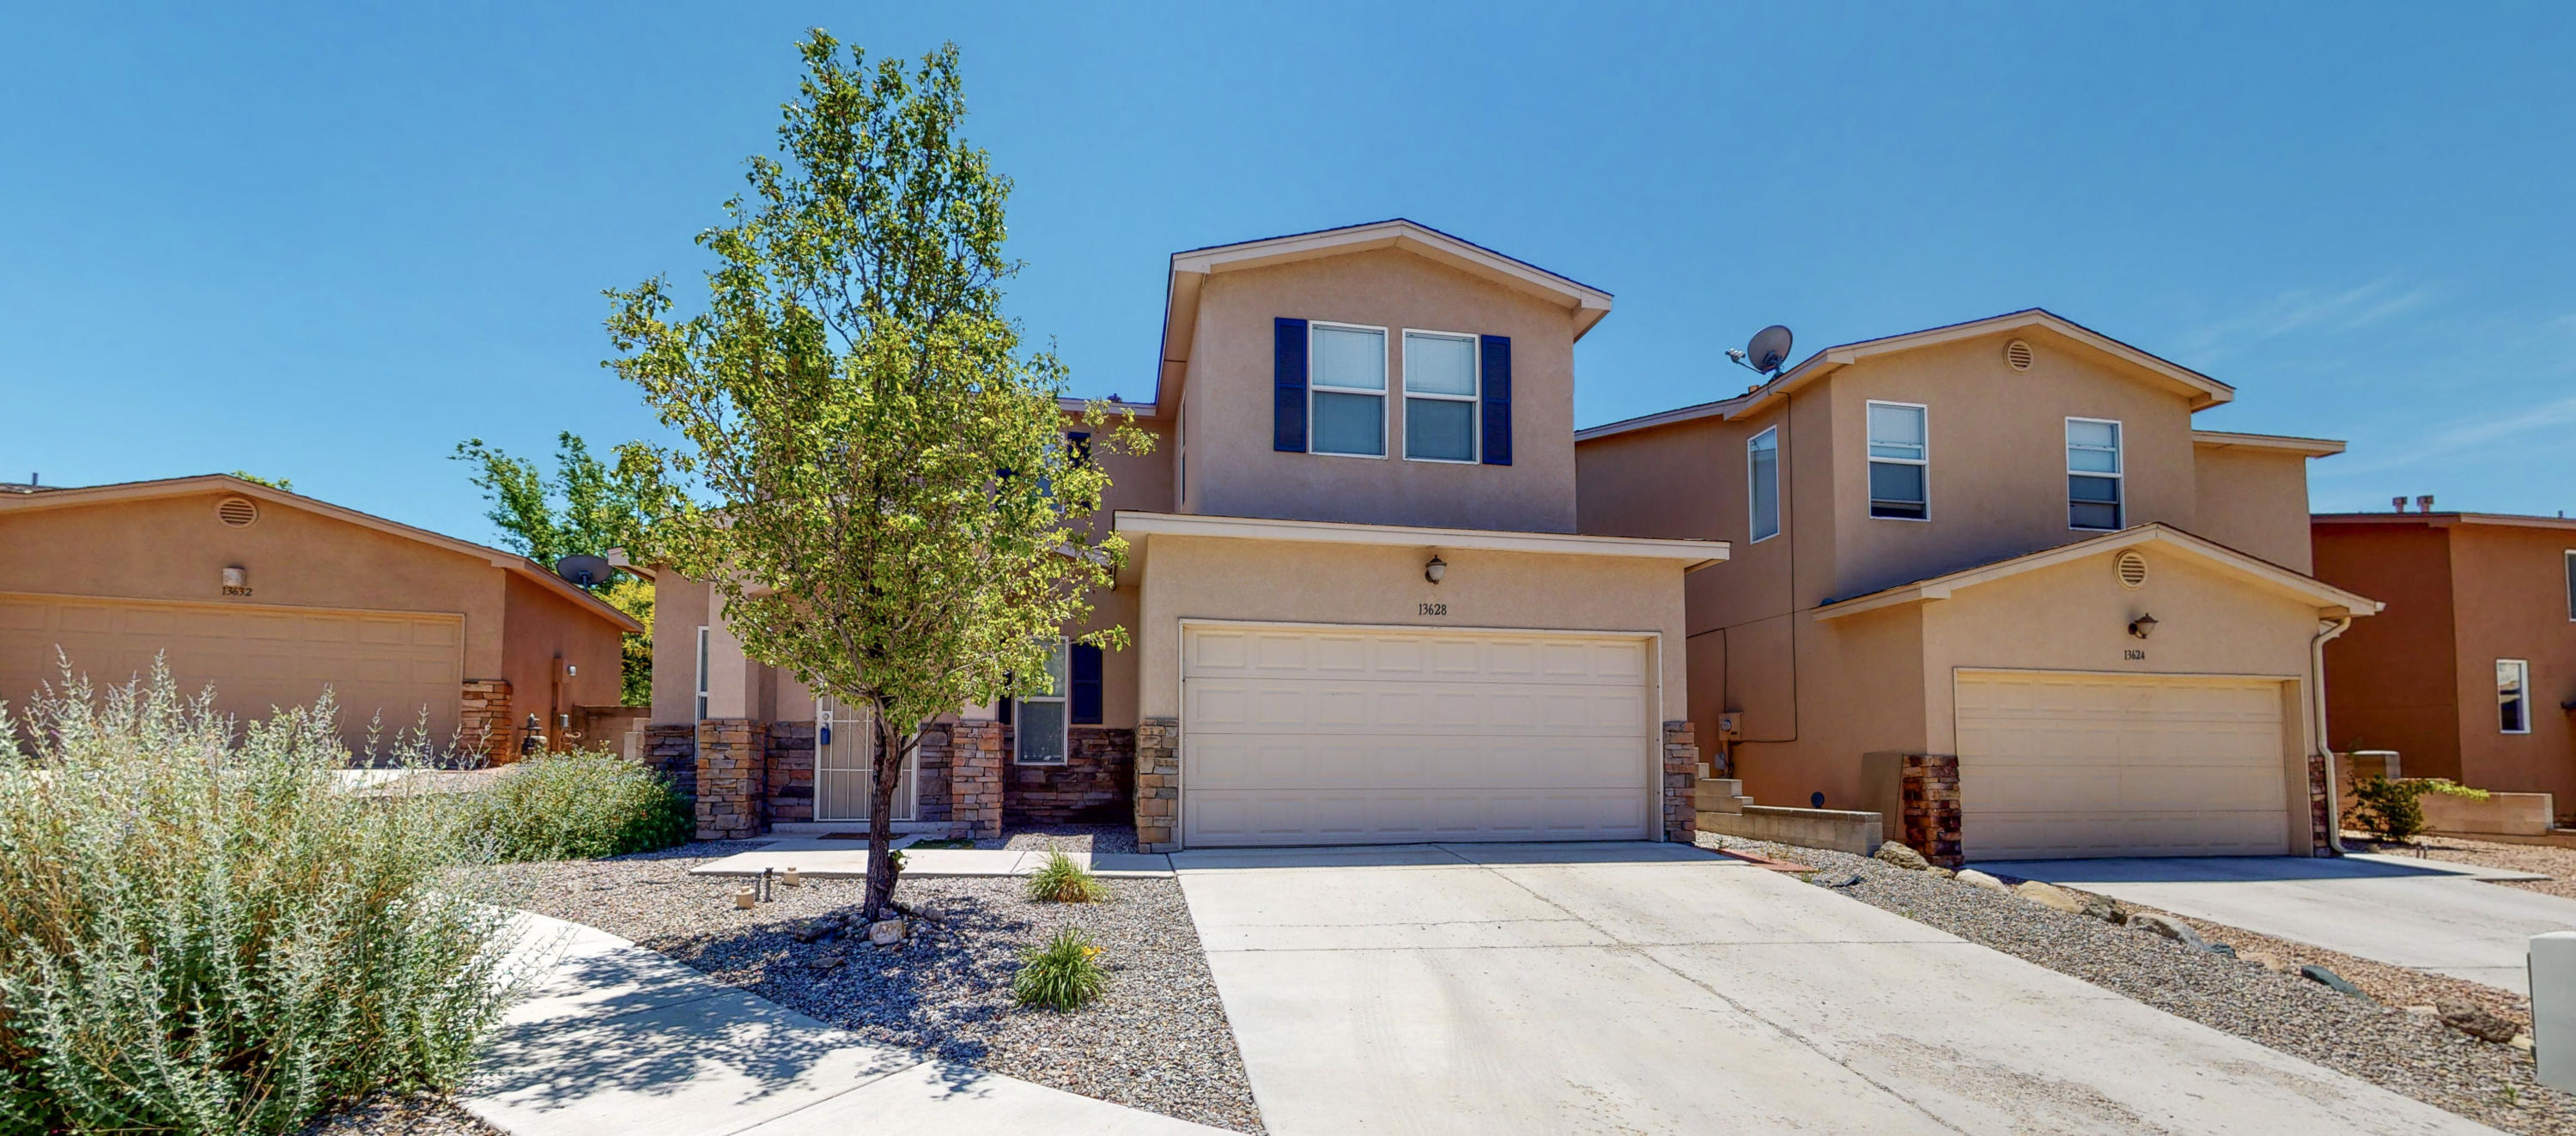 This beautiful home located in the Covered Wagon Subdivision is a must see!! There are two living areas with an open kitchen looking into the dining area.  Home has custom stonework and stainless steel appliances will convey with the home. No HOA and refrigerated air!  This home offers a low maintenance back yard and an open floorpan.   The master is a relaxing retreat with a large walk in closet and separate shower and garden tub.  Conveniently located to I-40, Kirtland AFB, grocery stores, movie theater and much more.  Schedule your showing; you won't want to miss this gem in Four Hills Area.